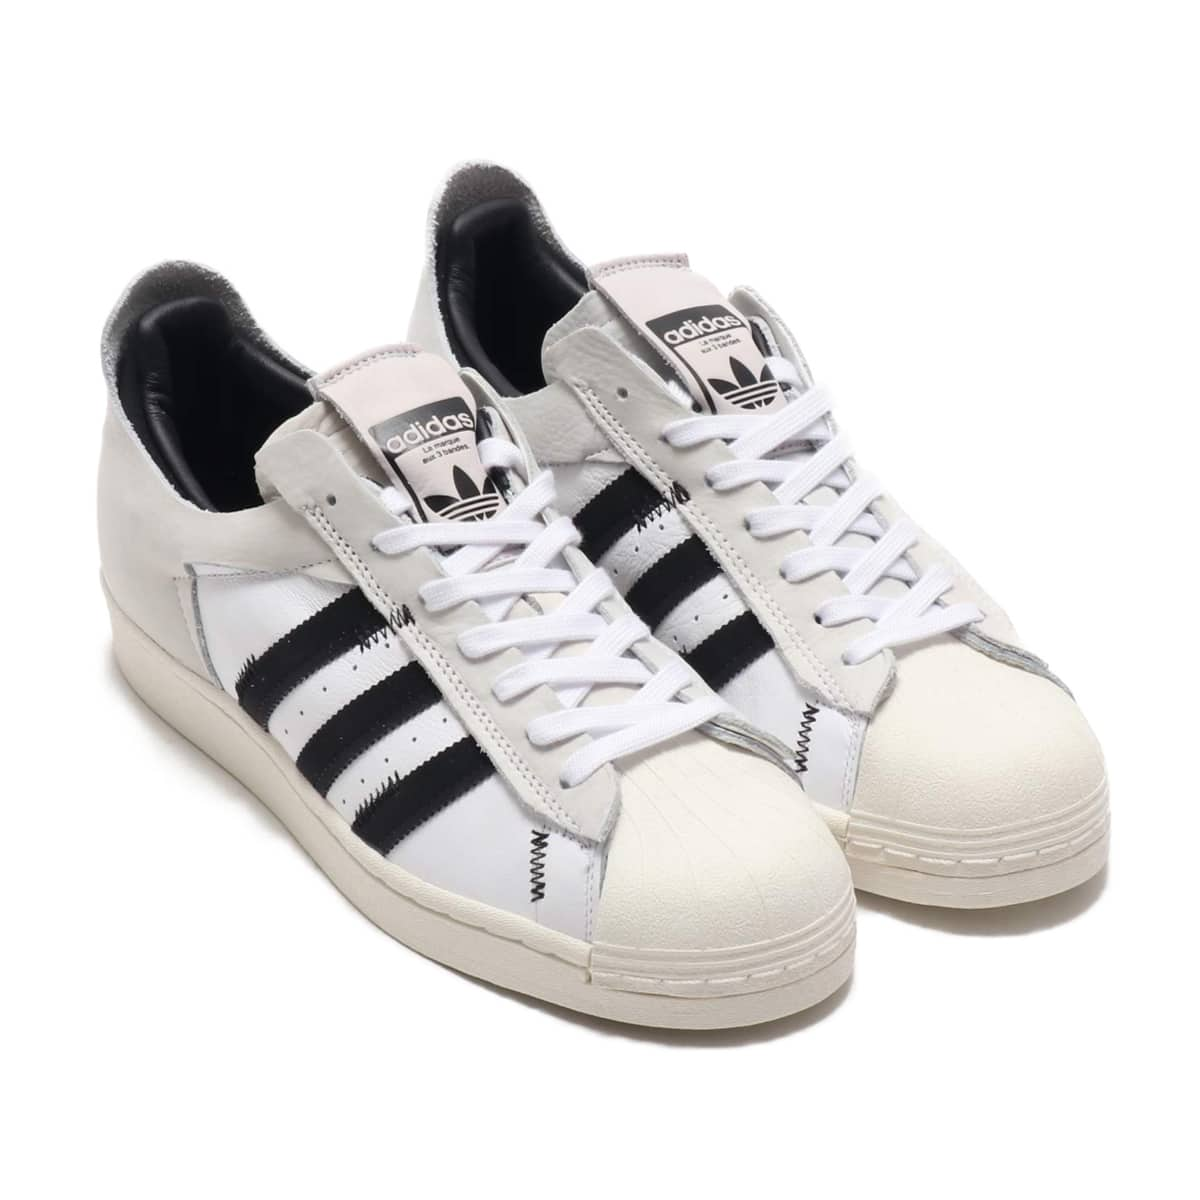 adidas SUPERSTAR FOOTWEAR WHITE/CORE BLACK/OFF WHITE 20SS-I_photo_large